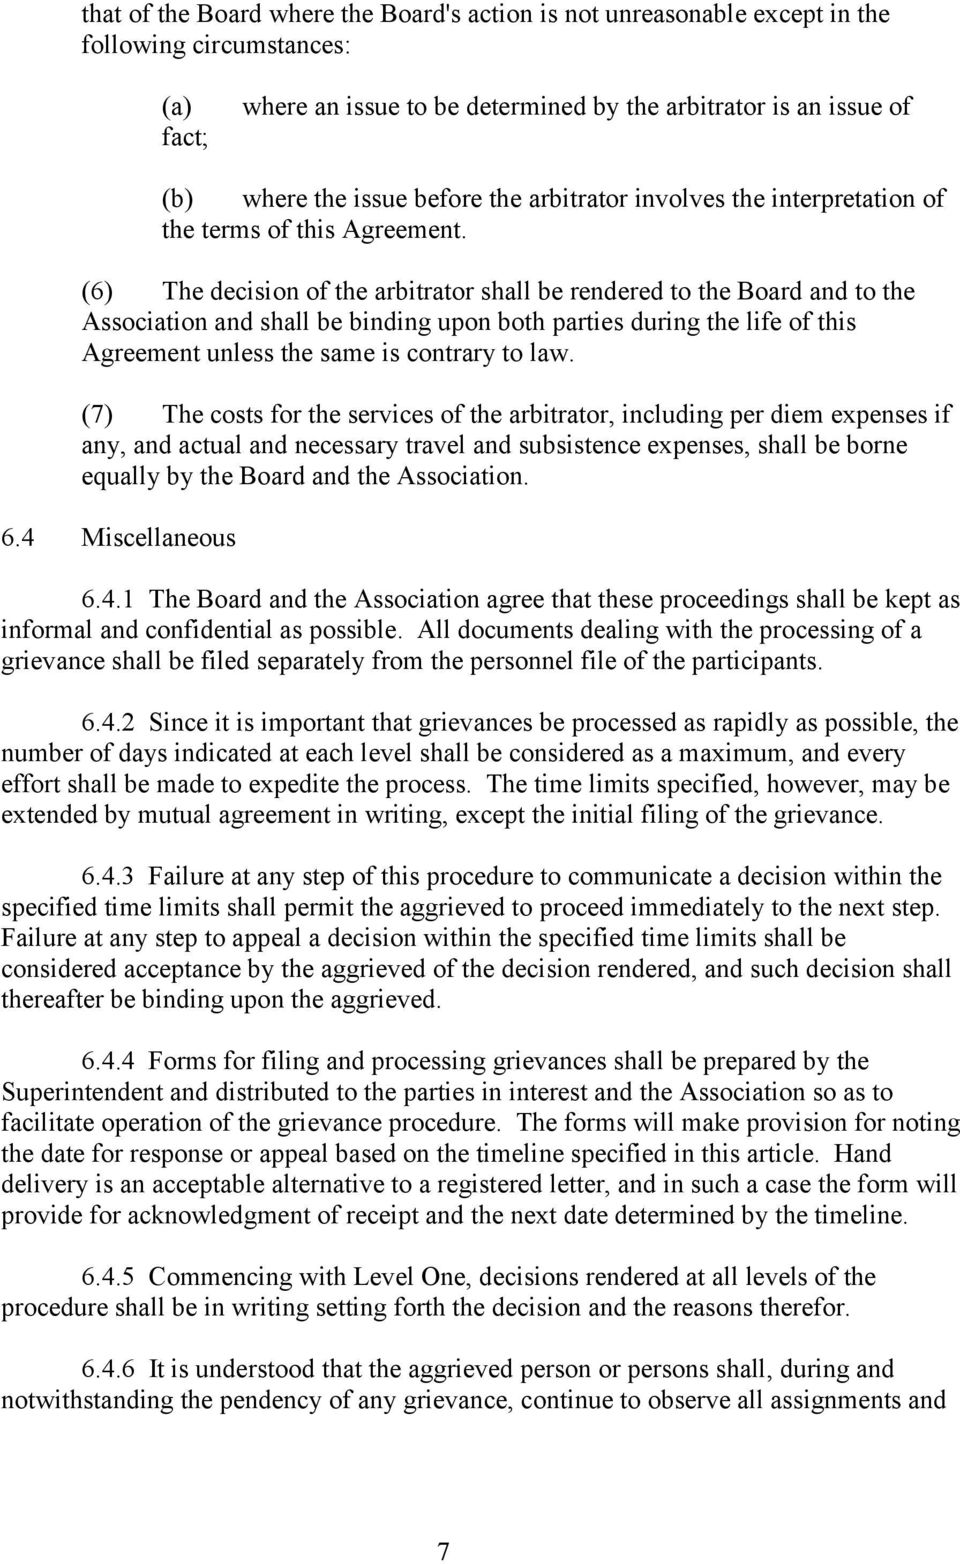 (6) The decision of the arbitrator shall be rendered to the Board and to the Association and shall be binding upon both parties during the life of this Agreement unless the same is contrary to law.